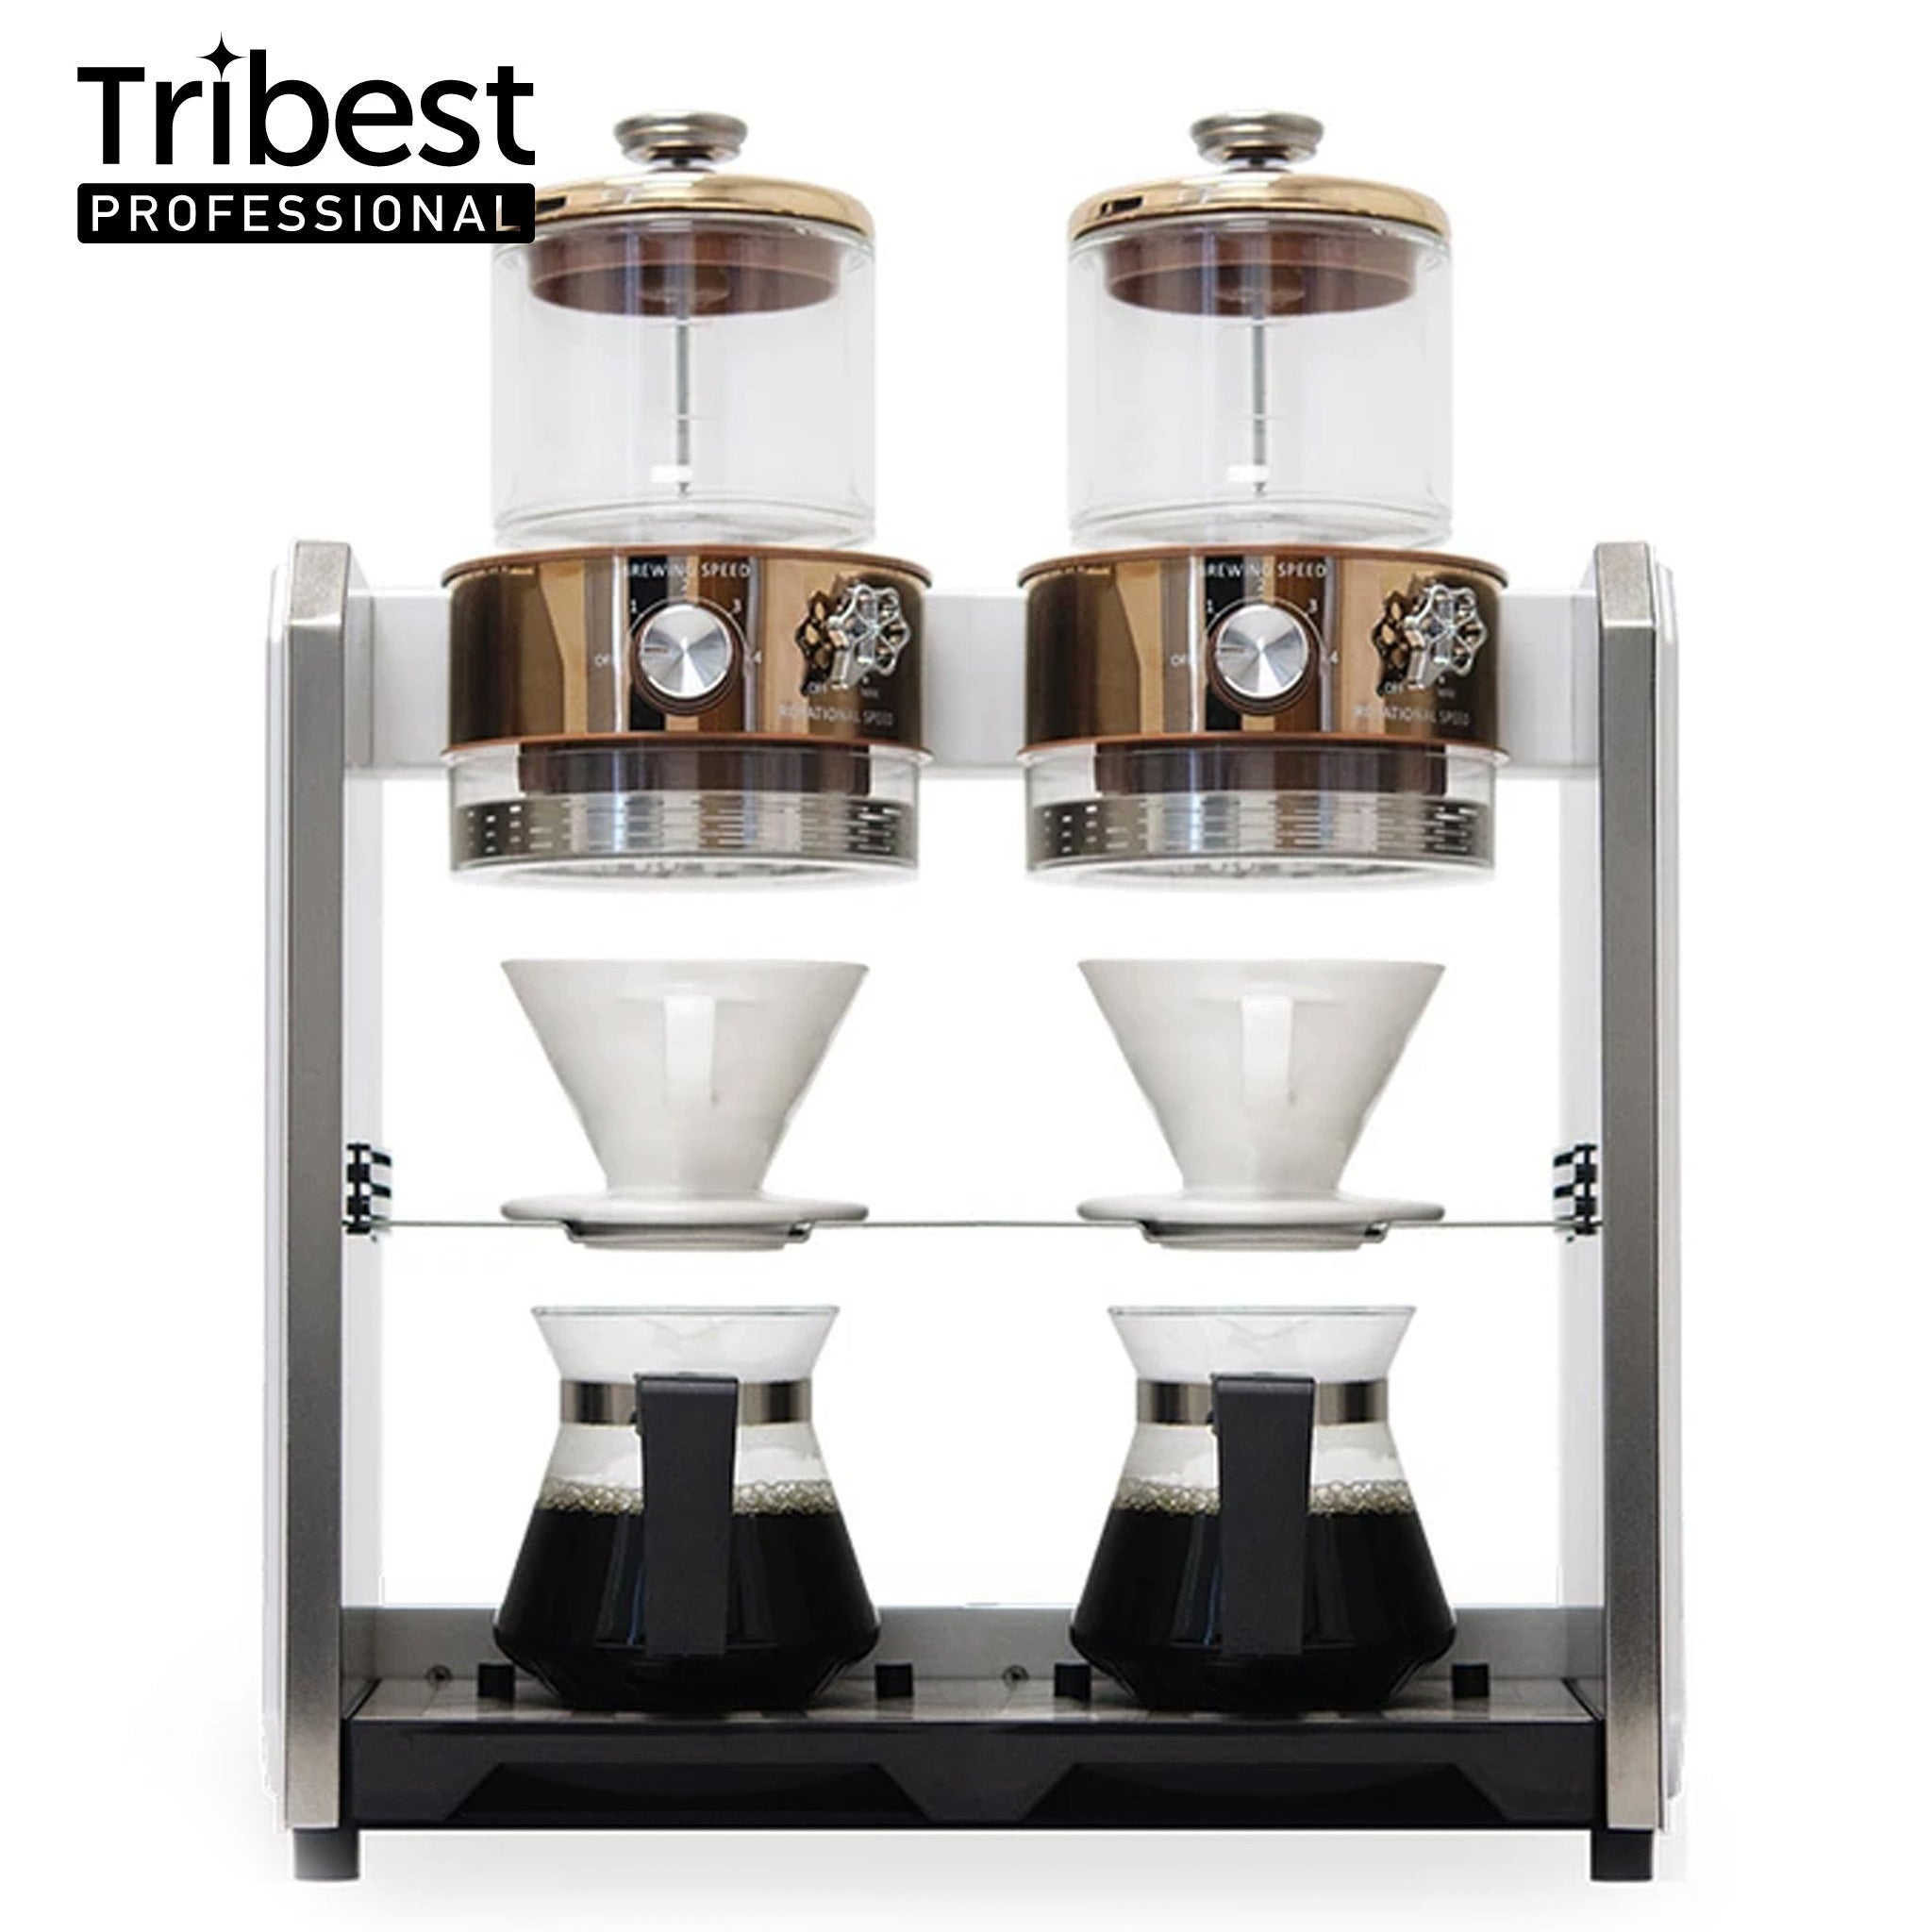 Tribest Shine Kitchen Co.® Autopour Commercial Automatic Pour Over Coffee Machine (Double)